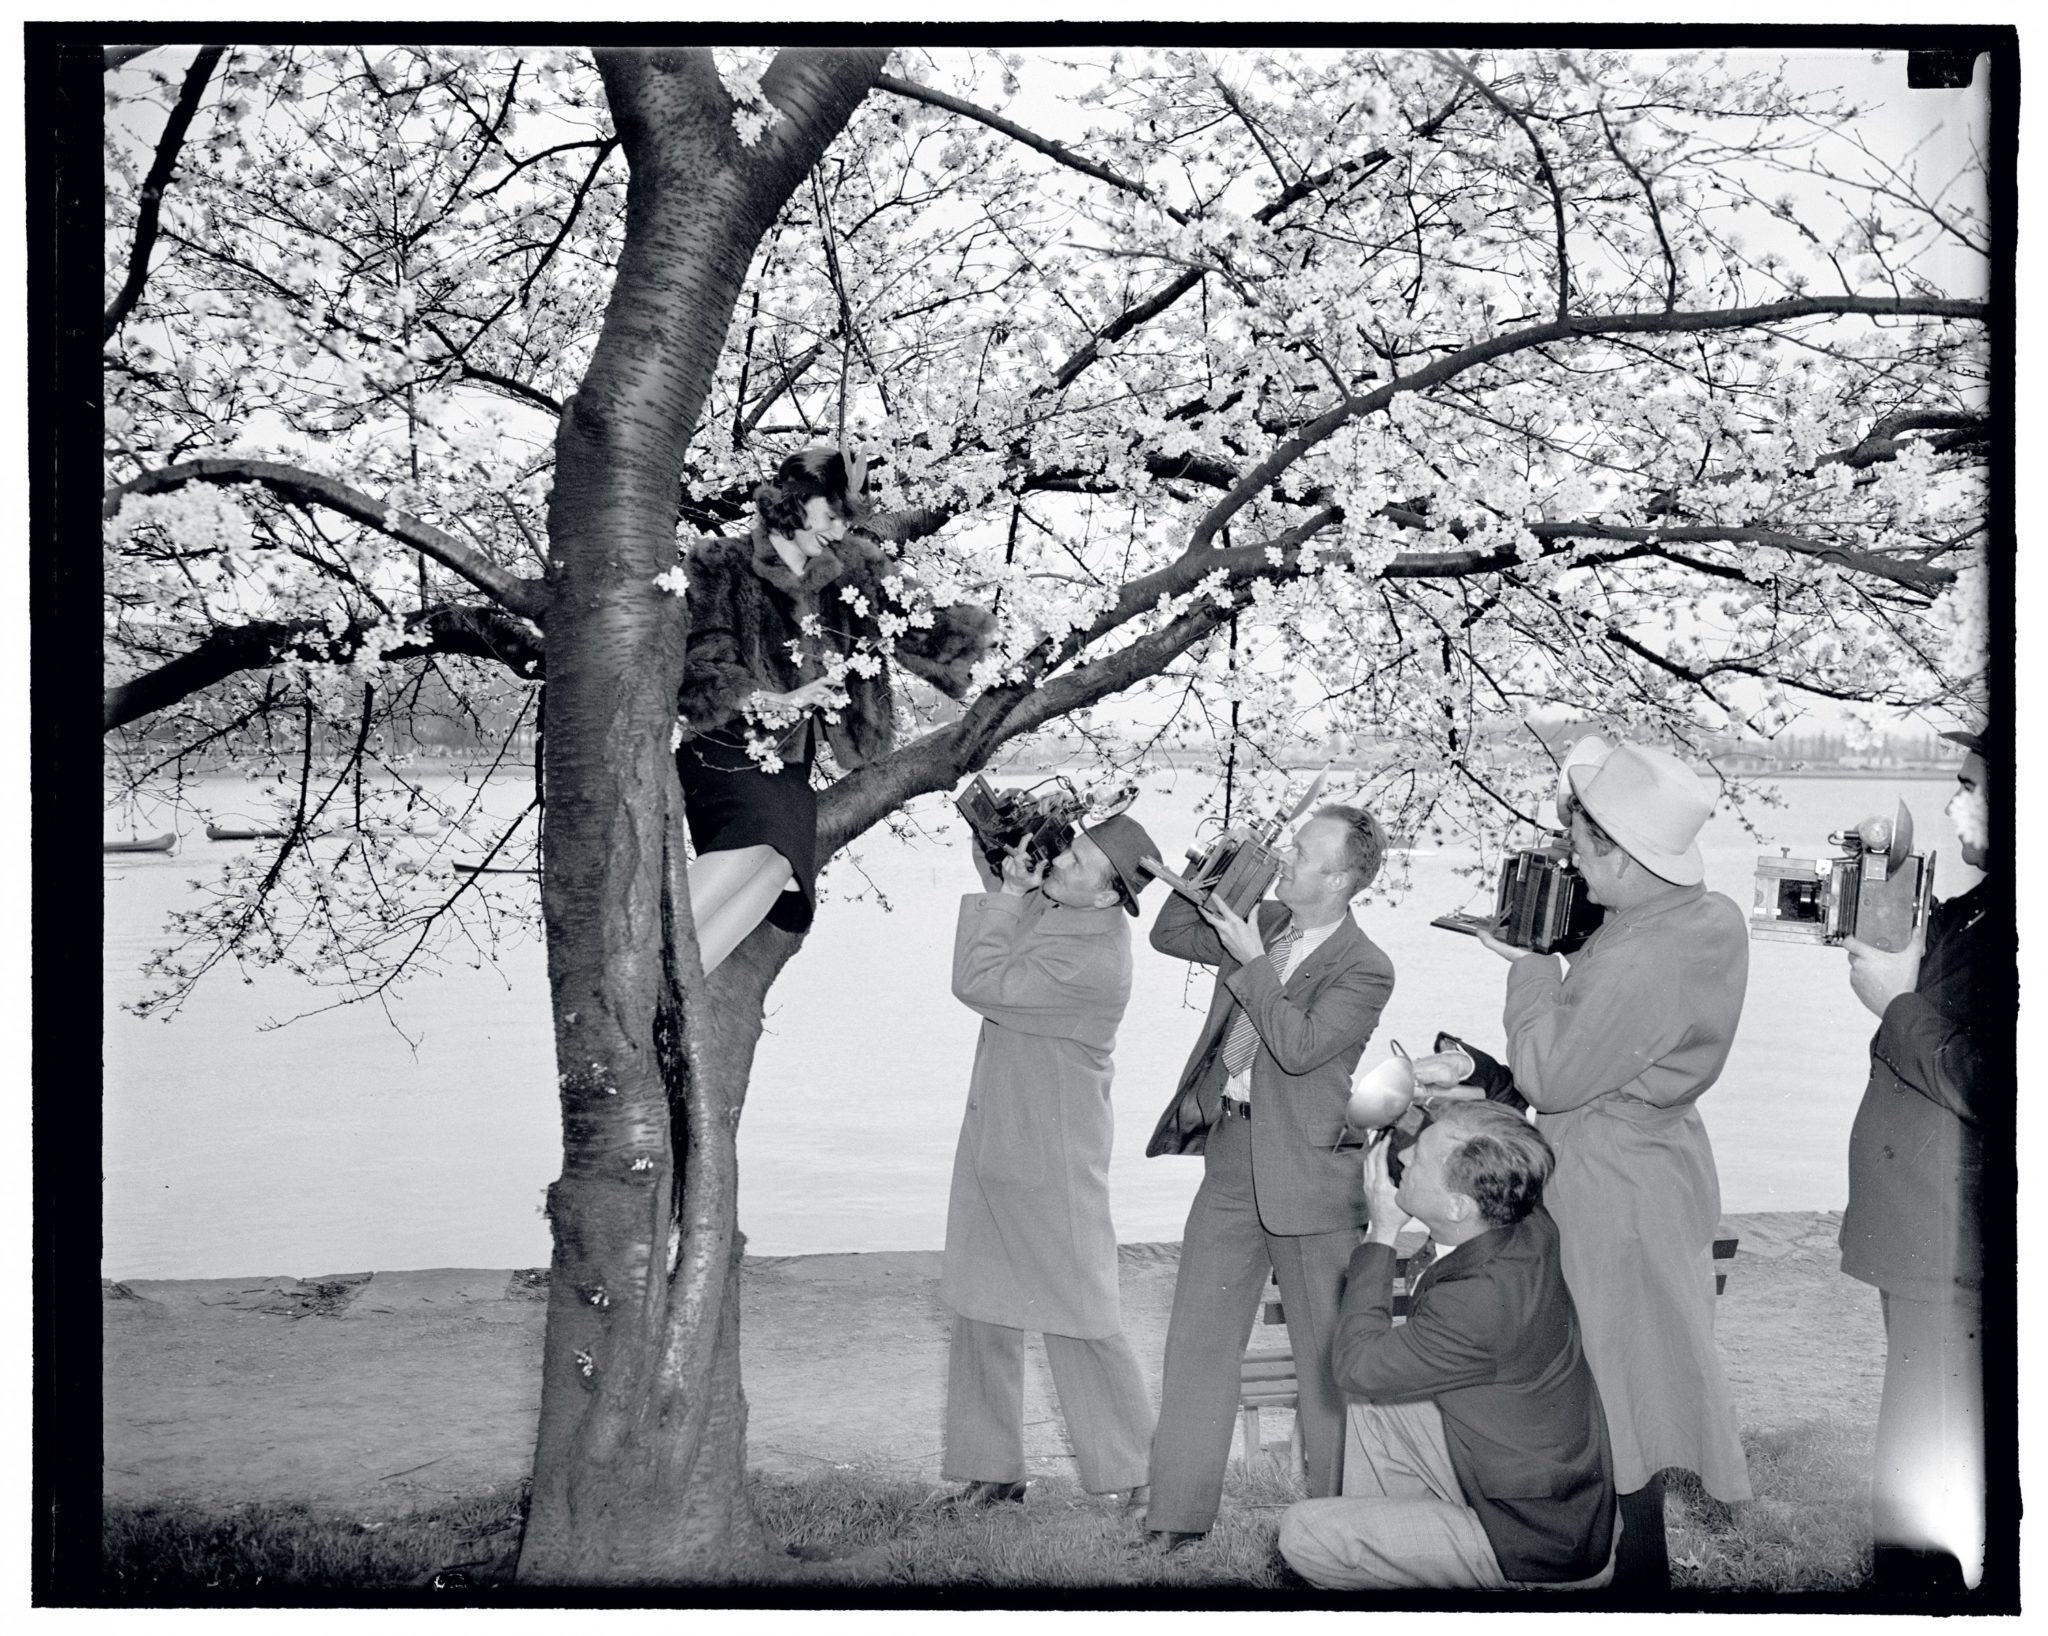 Check Out These Amazing Vintage Cherry Blossom Photos